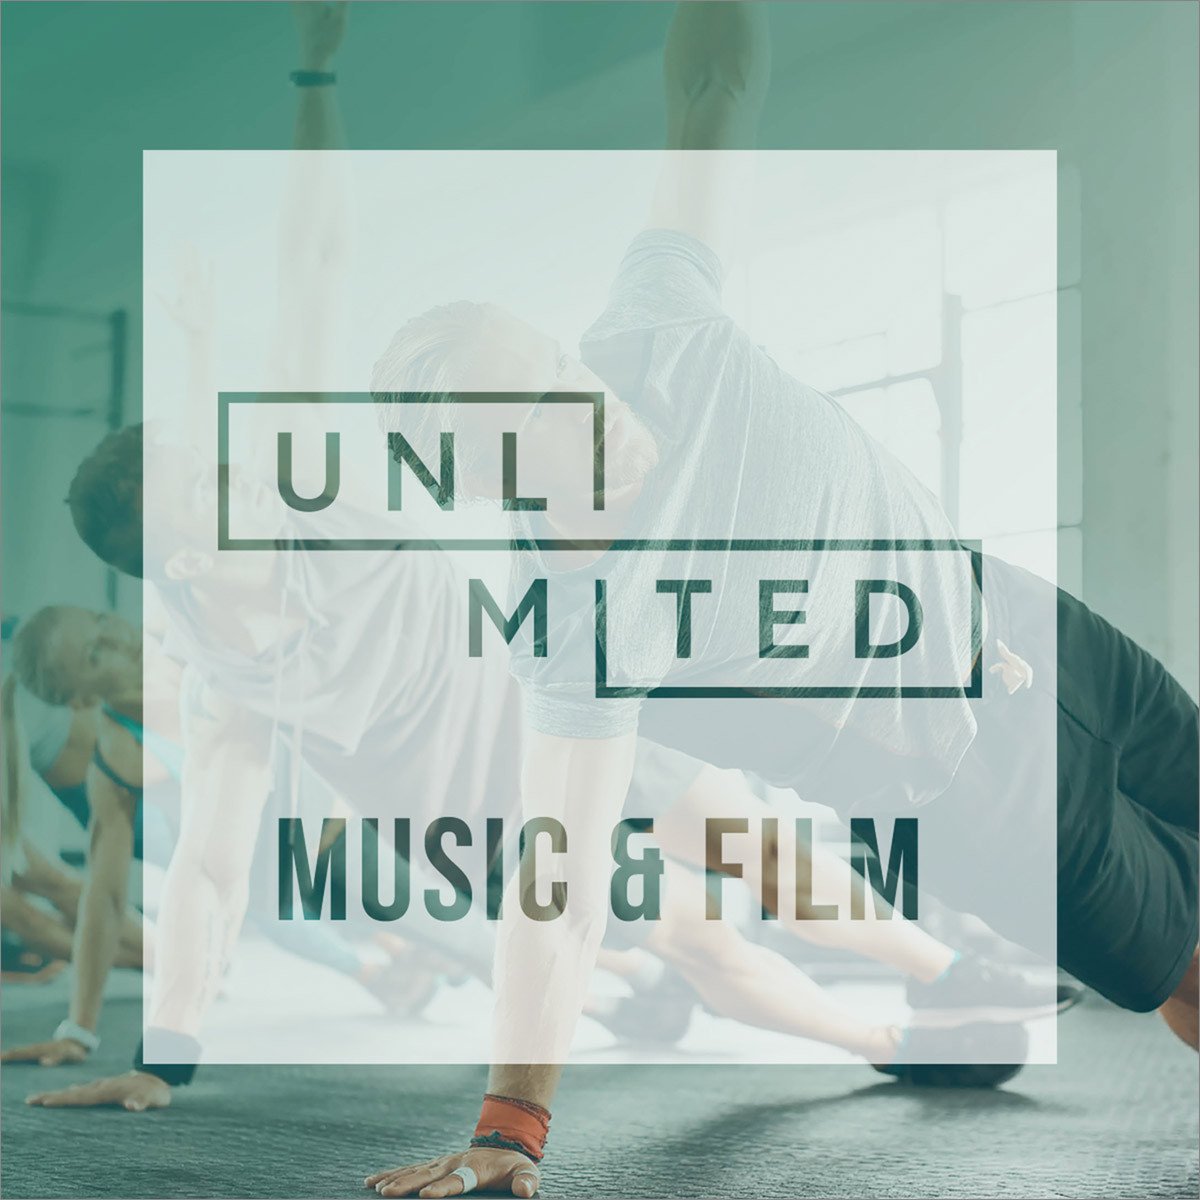 MY! UNLIMITED FREE Music & Film - Gym Group II